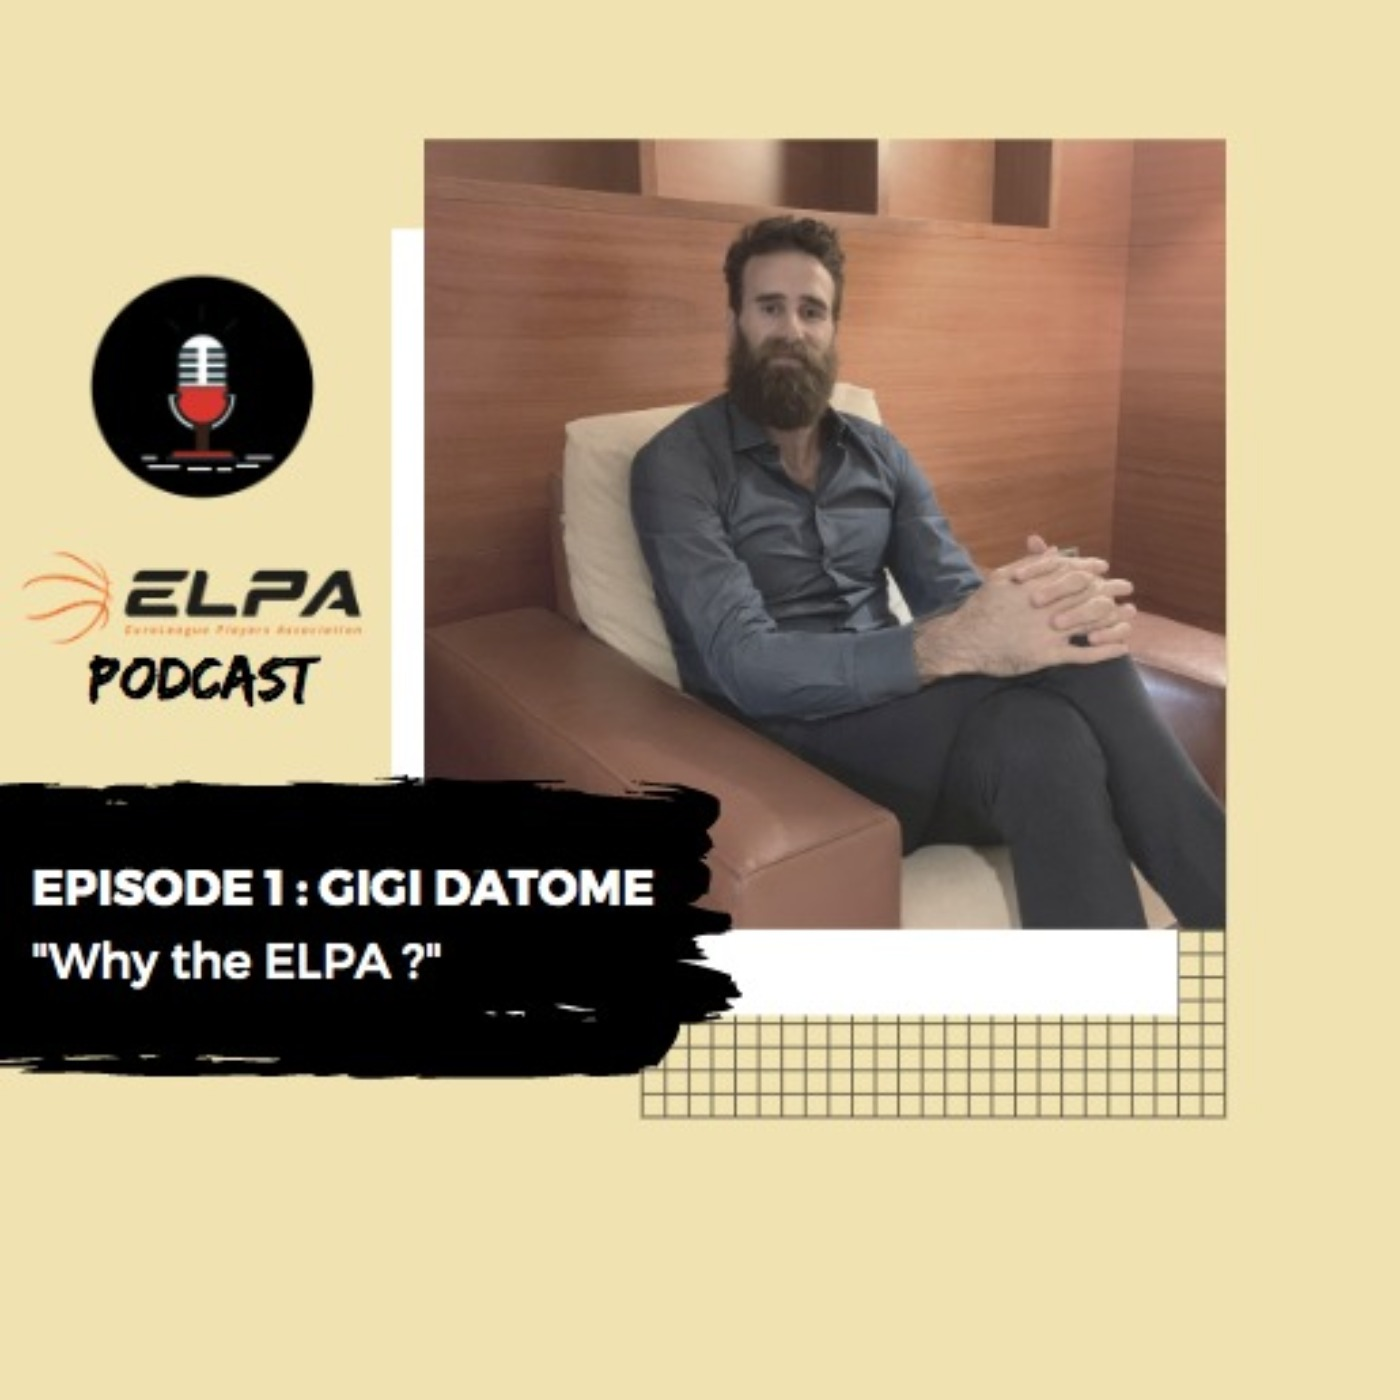 Episode 1 : Gigi Datome